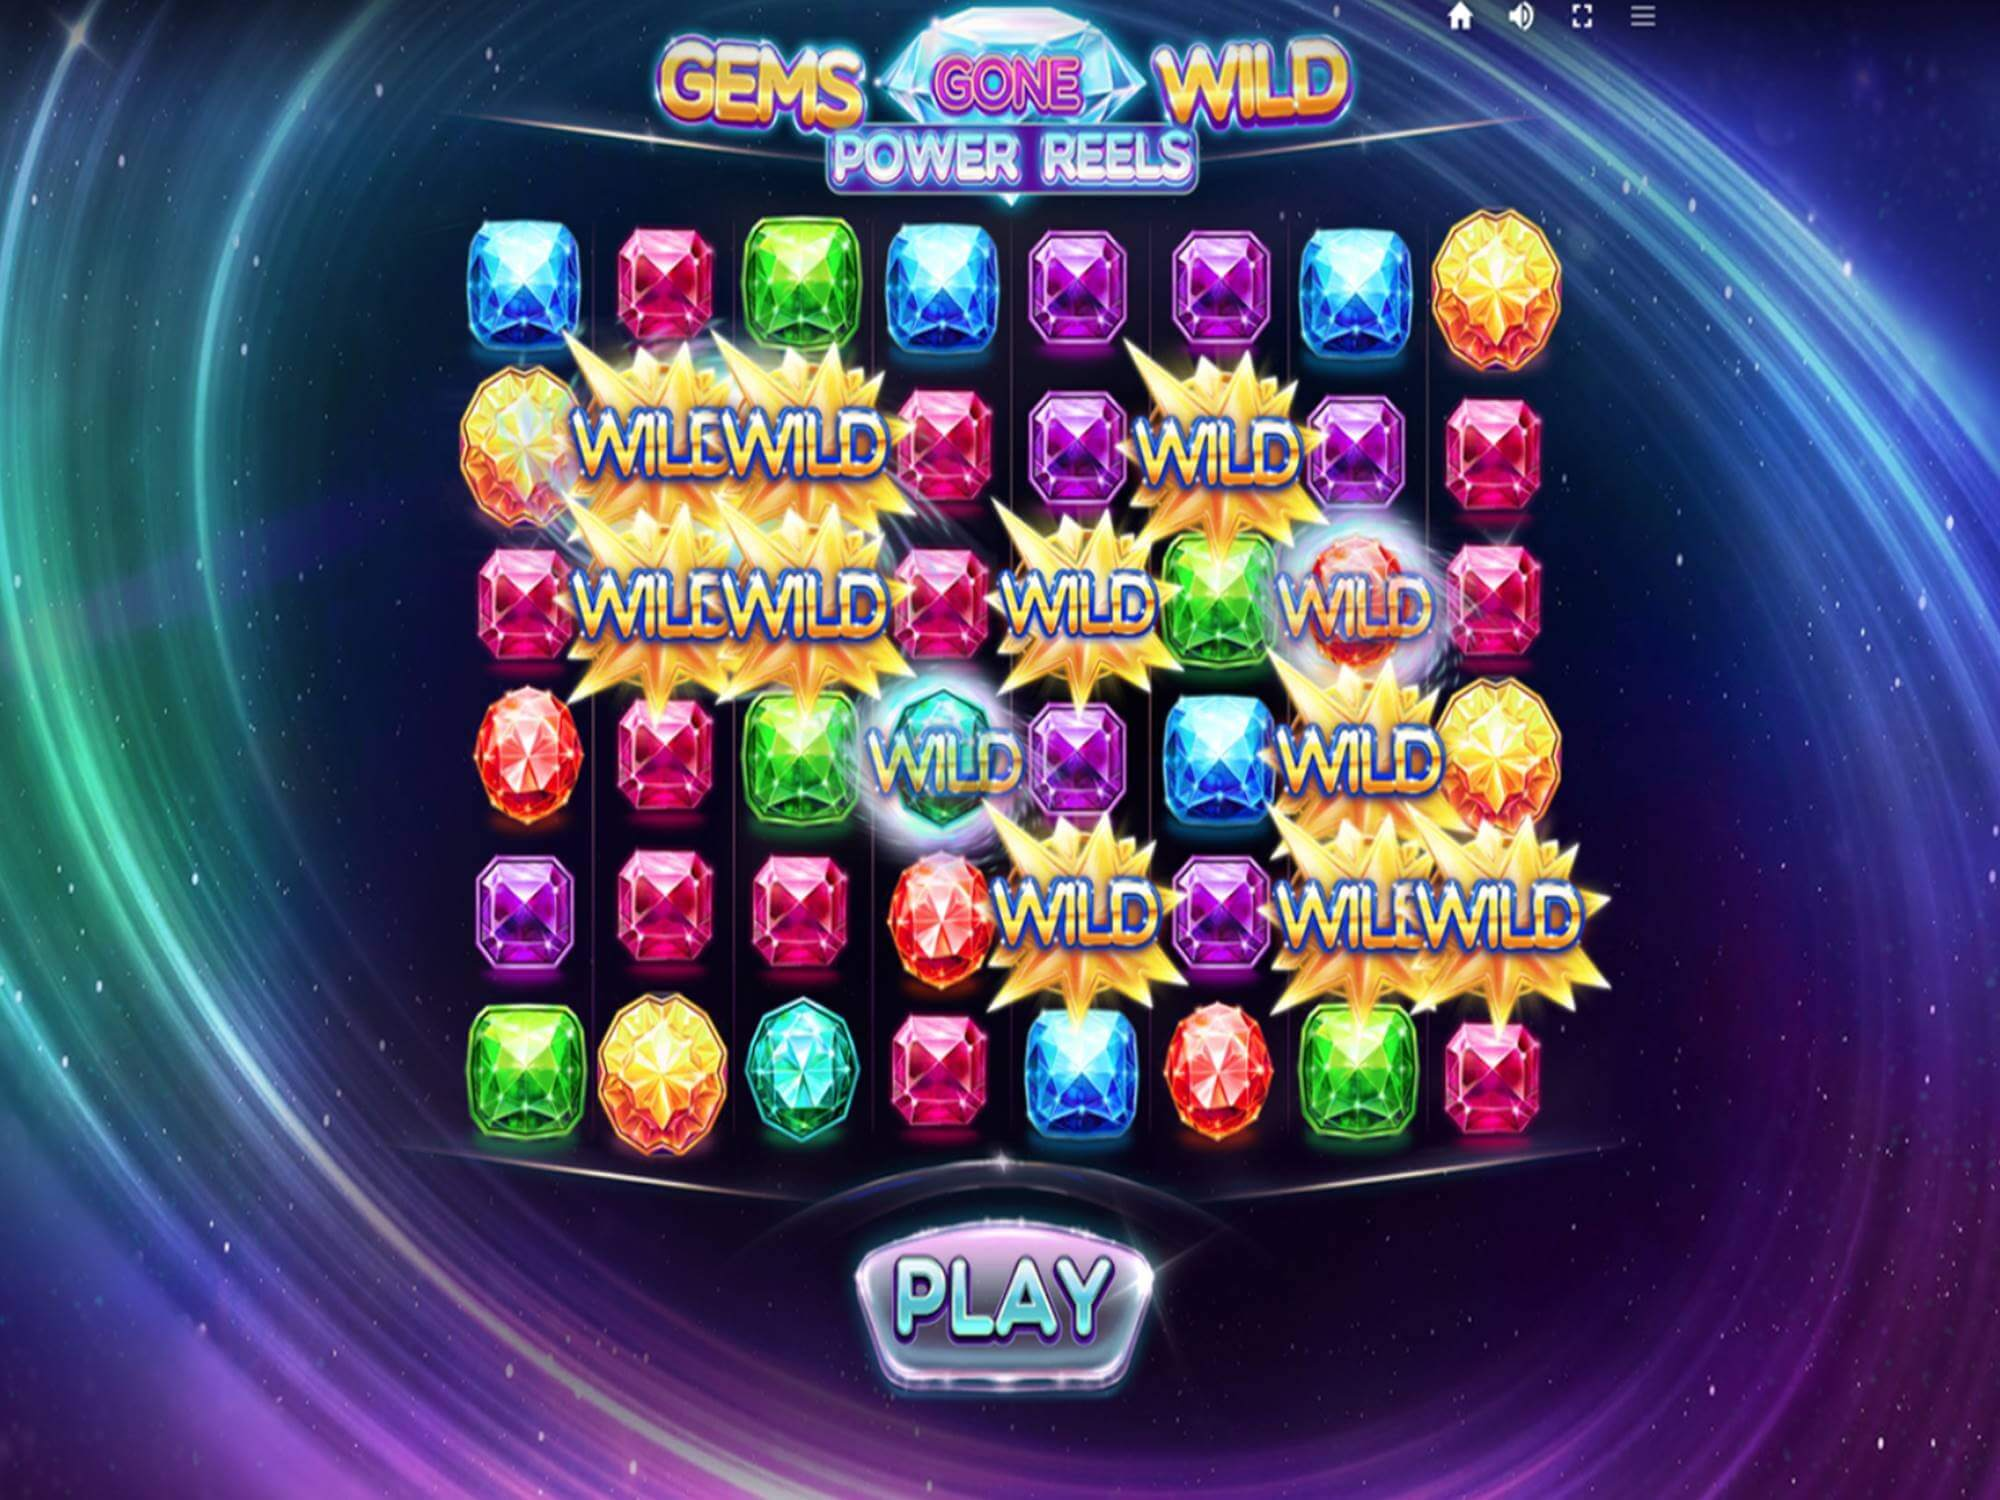 Gems Gone Wild Power Reels Slot Gameplay